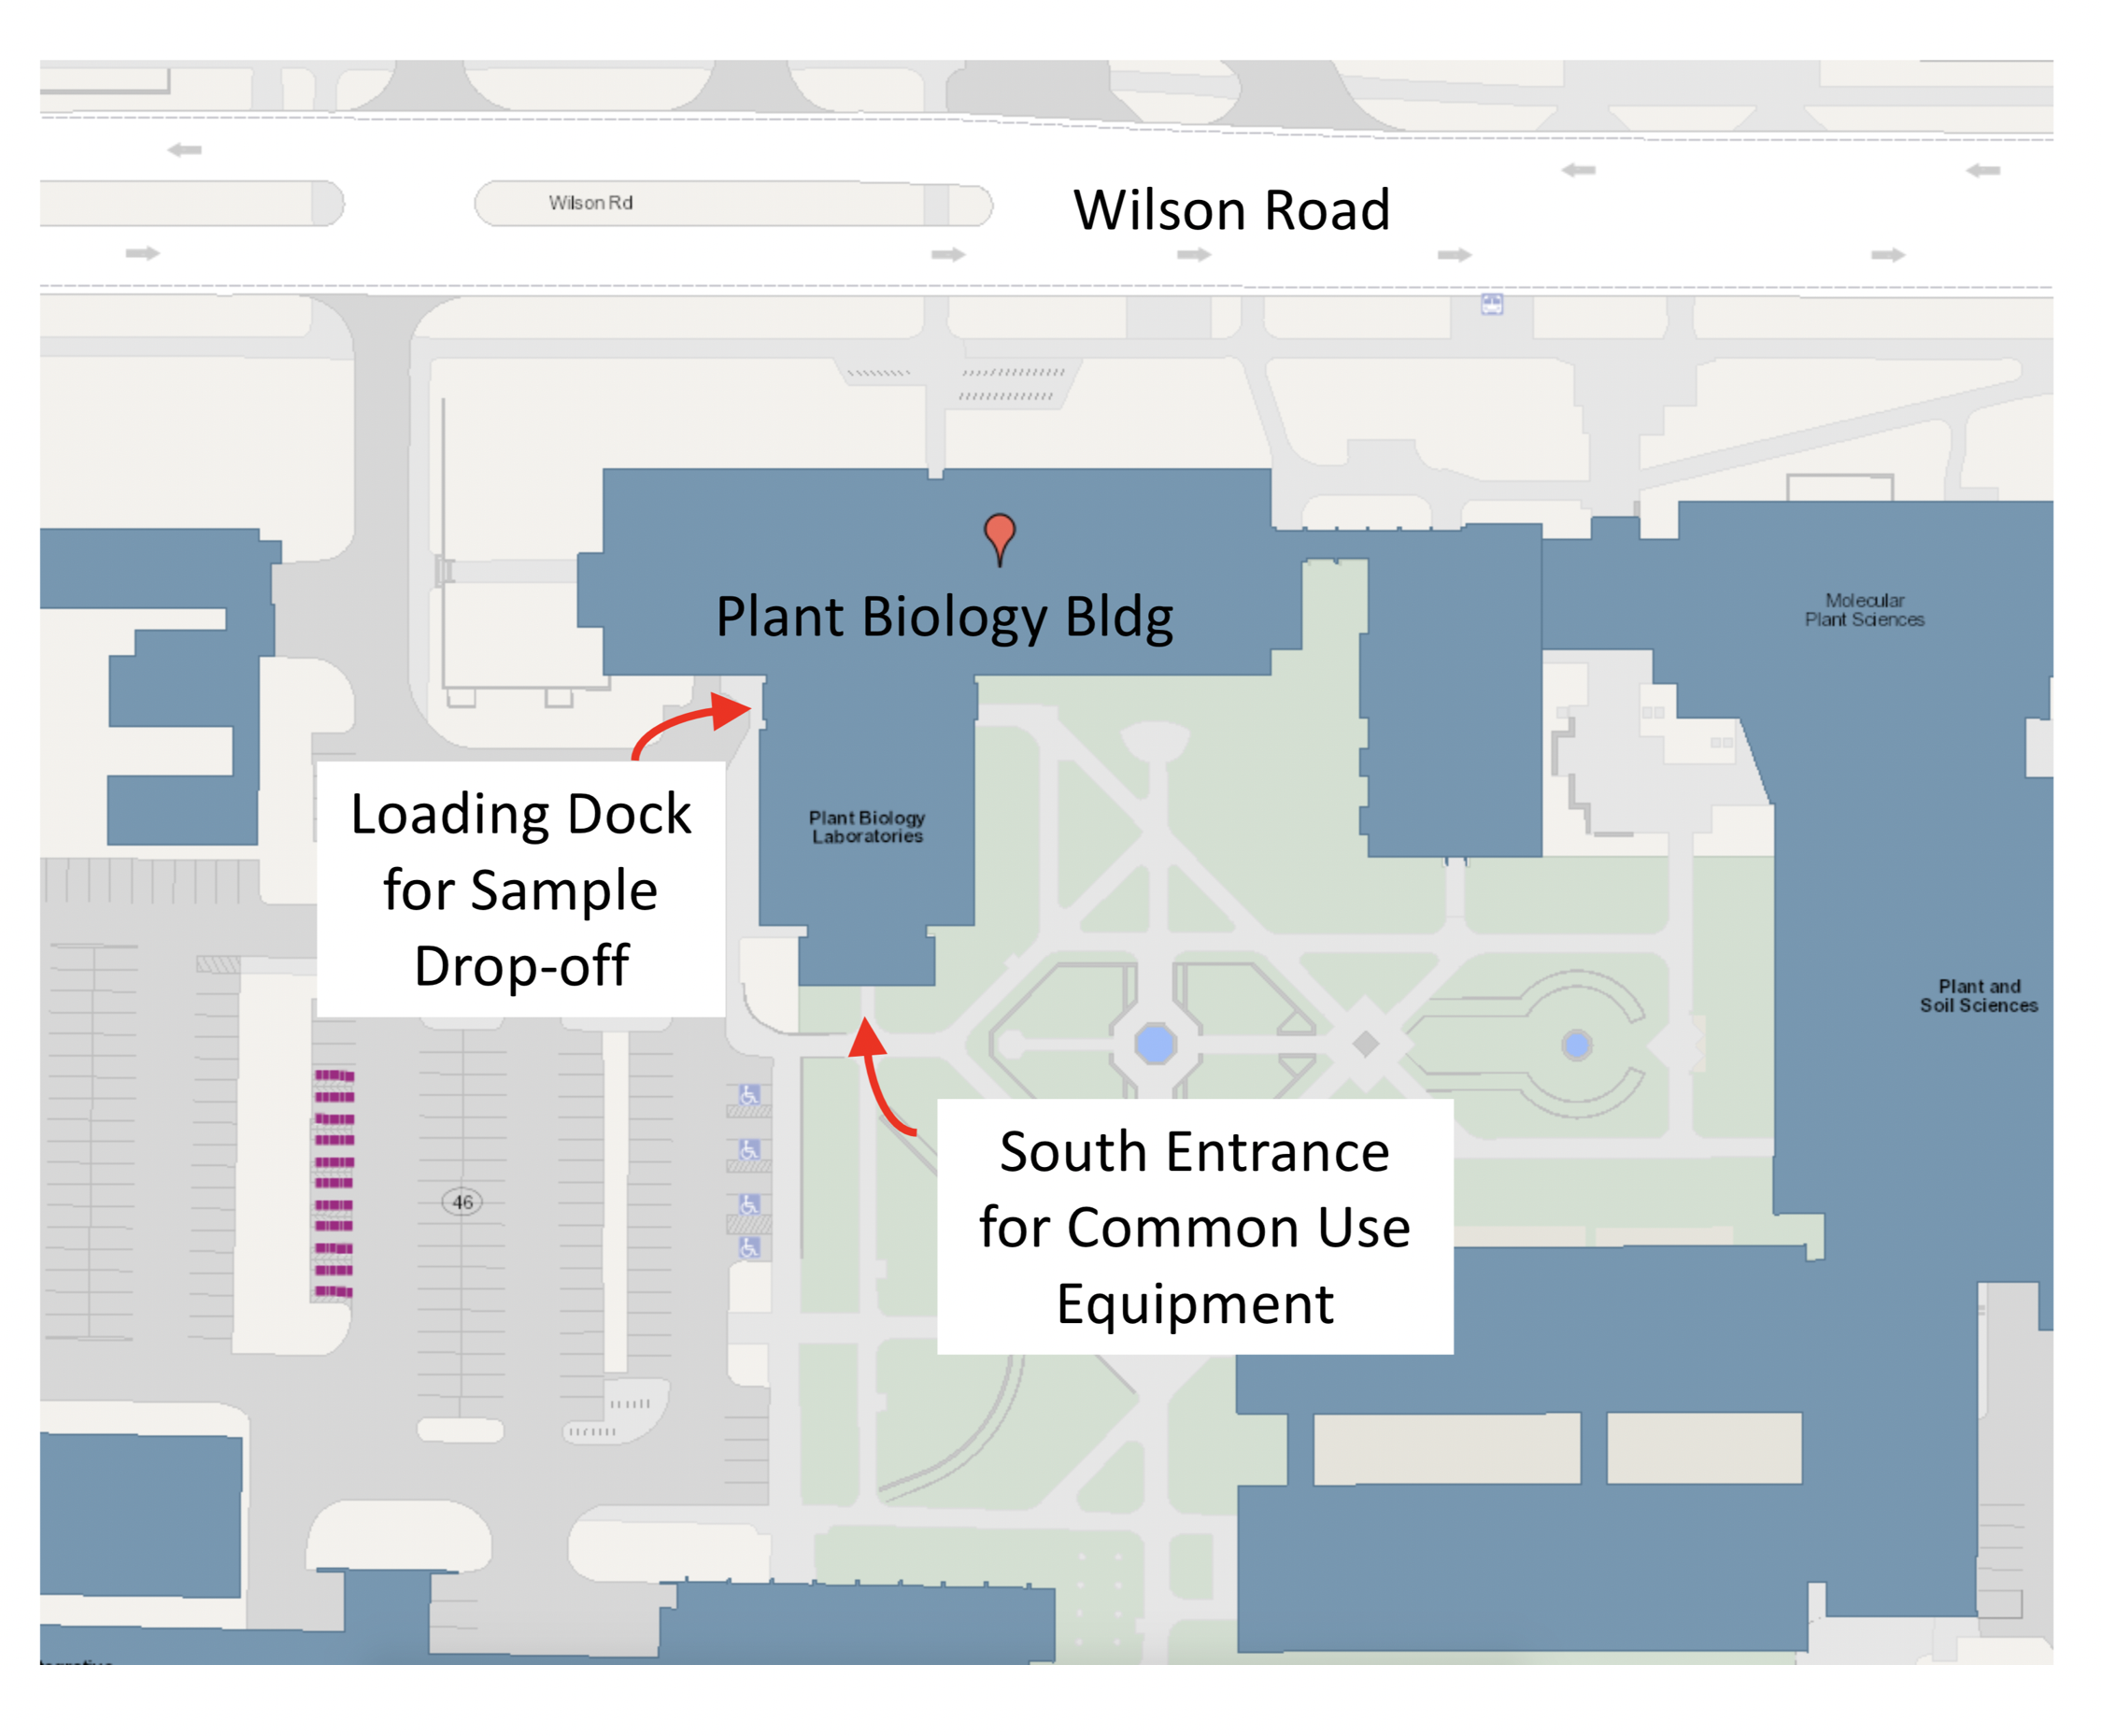 Map of the plant biology building showing the south entrance for the common use equipment room.